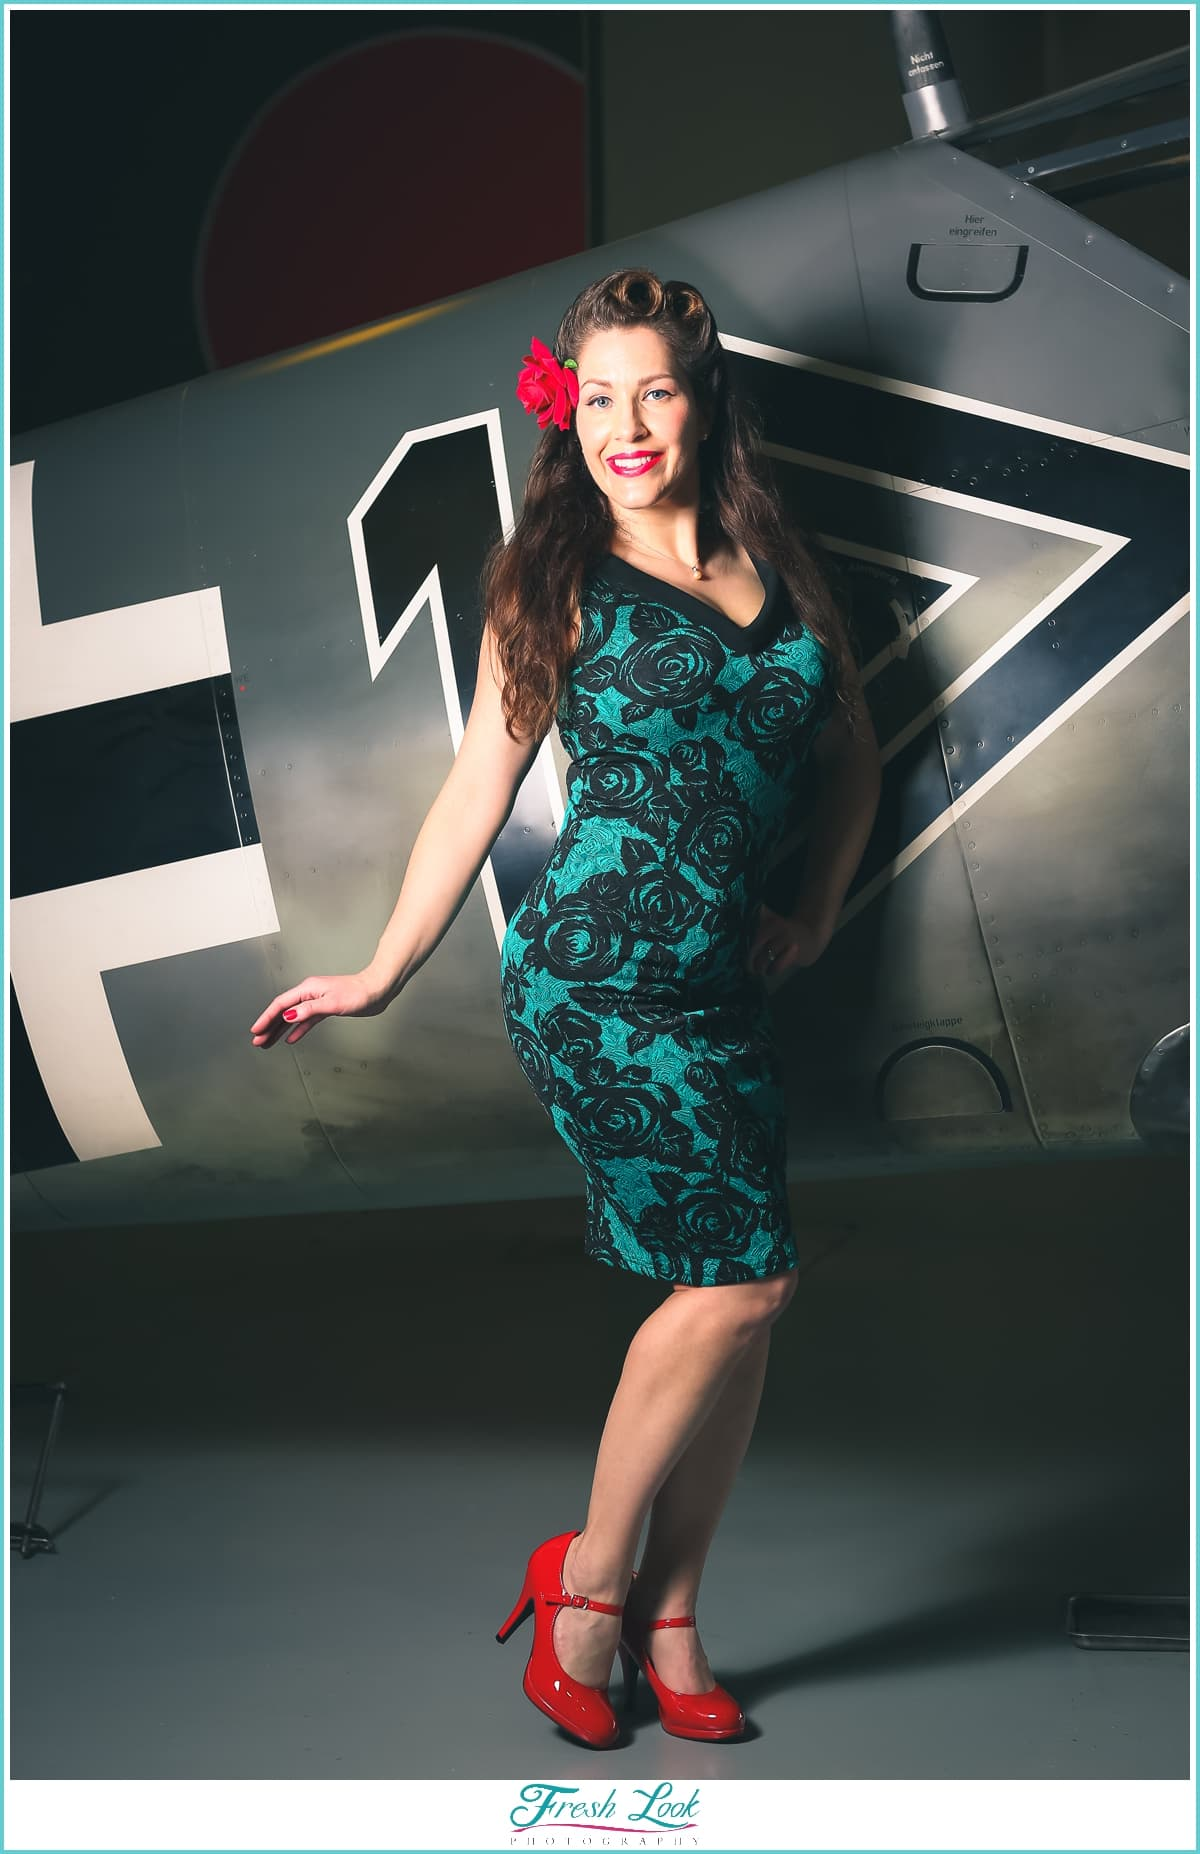 Vintage photoshoot at Military Aviation Museum